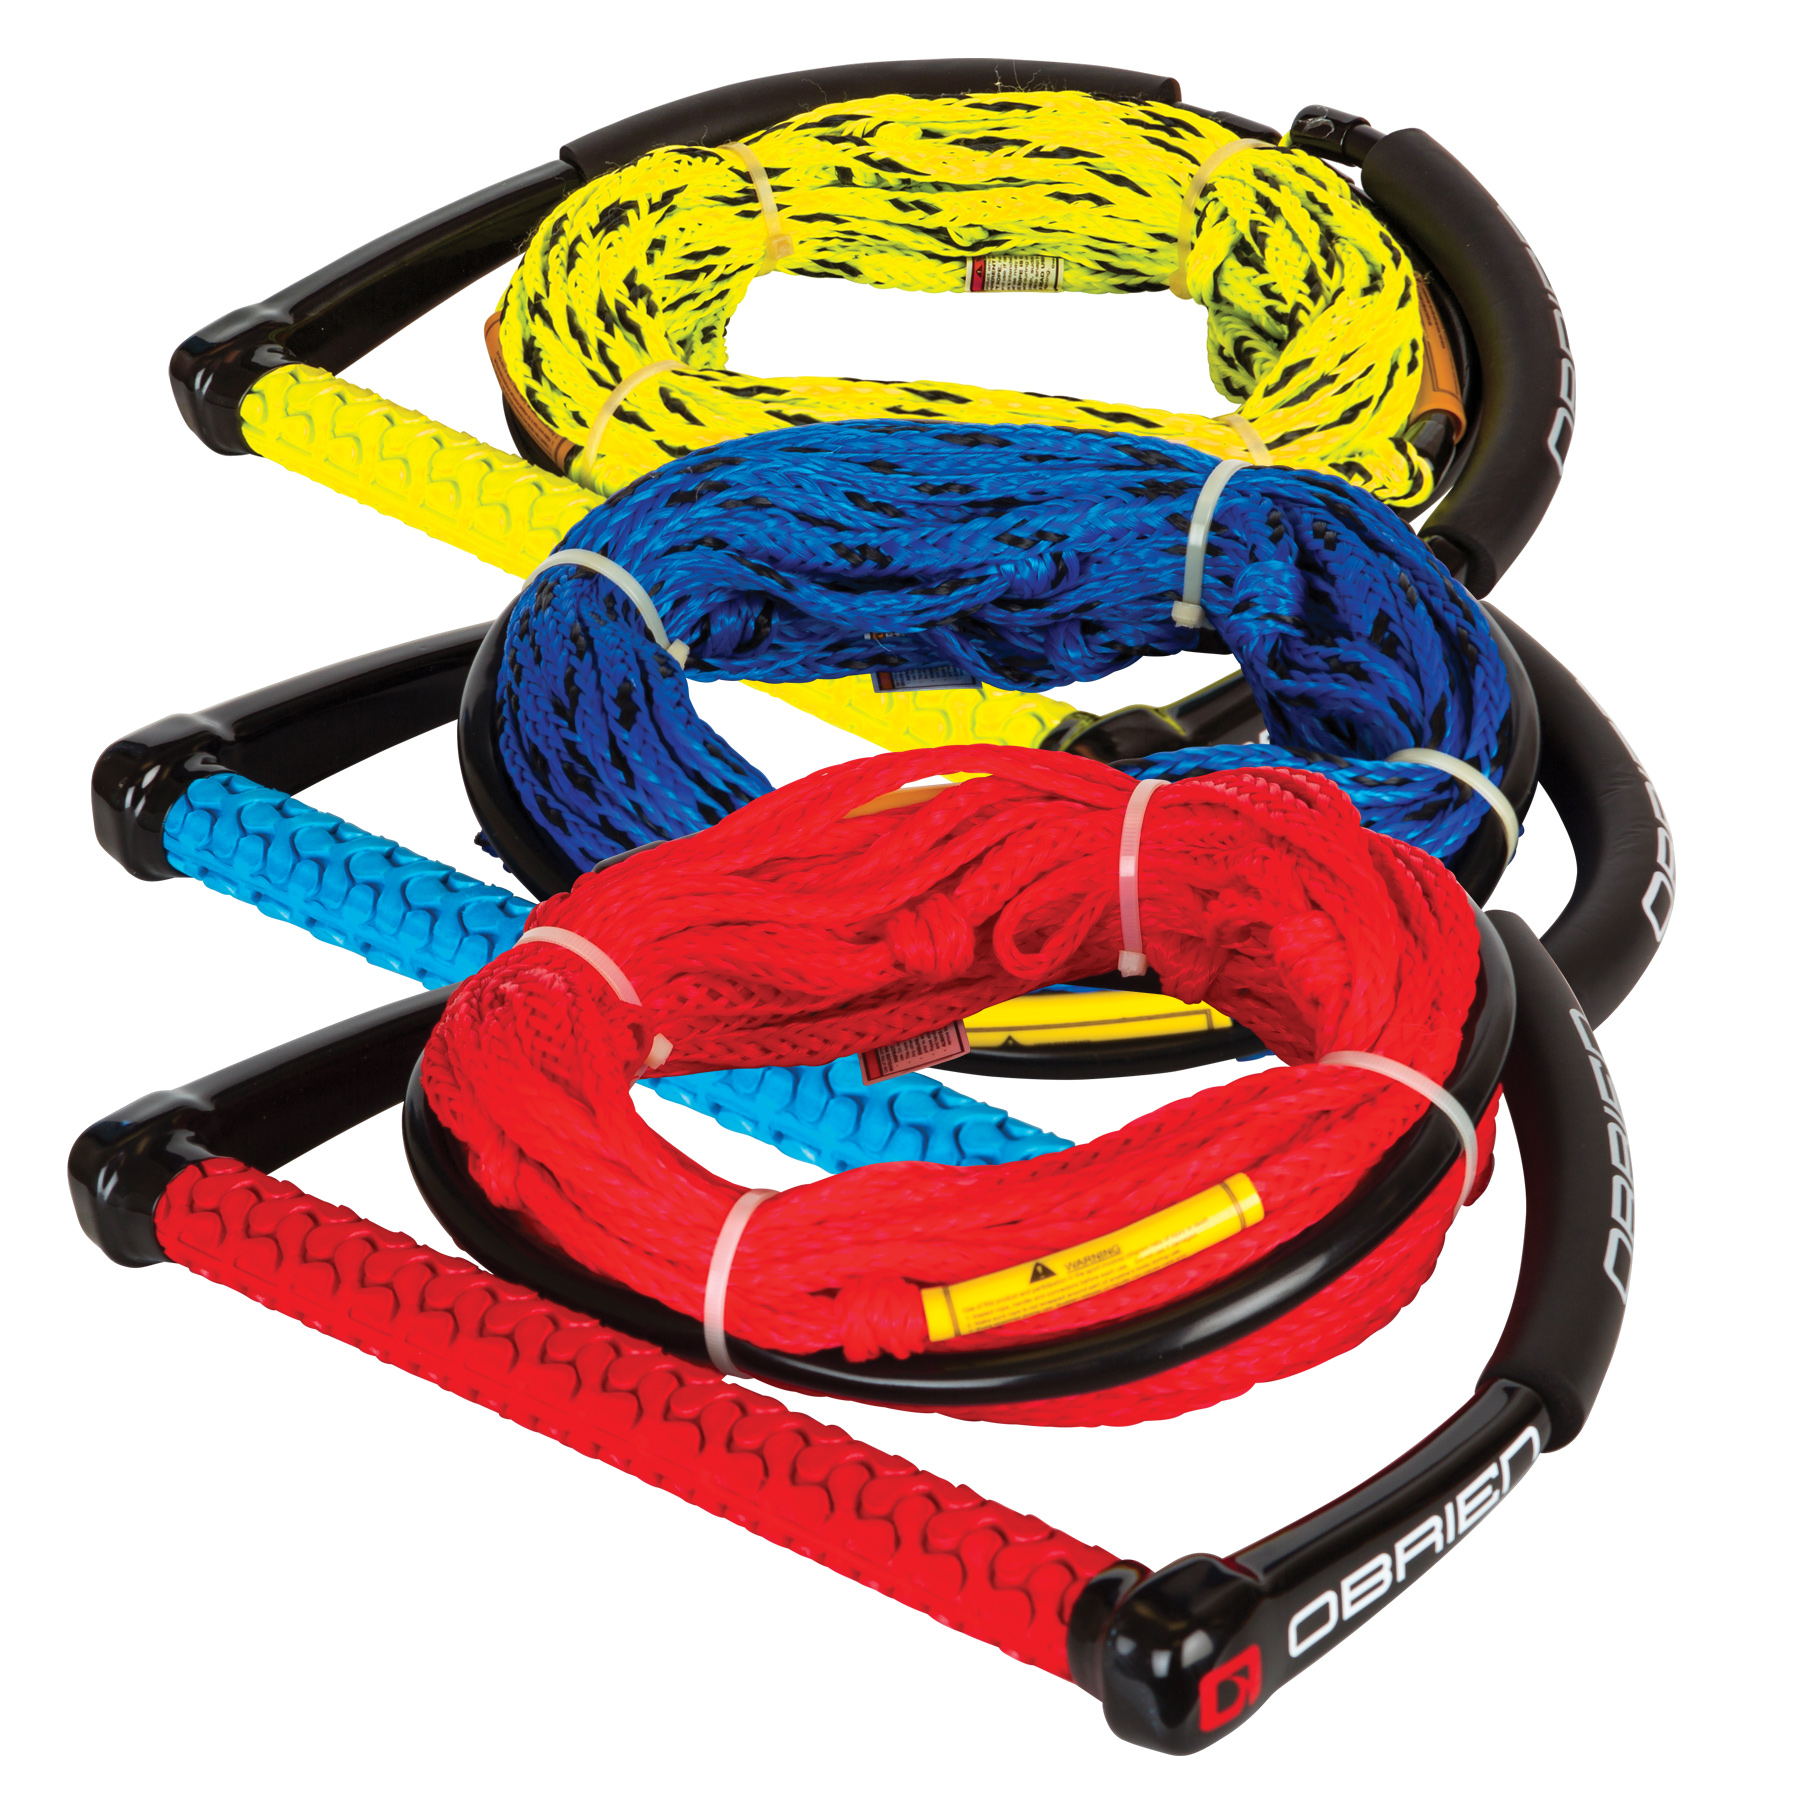 2019-OBrien-4-Section-Wake-Combo-Rope-Handle.jpg